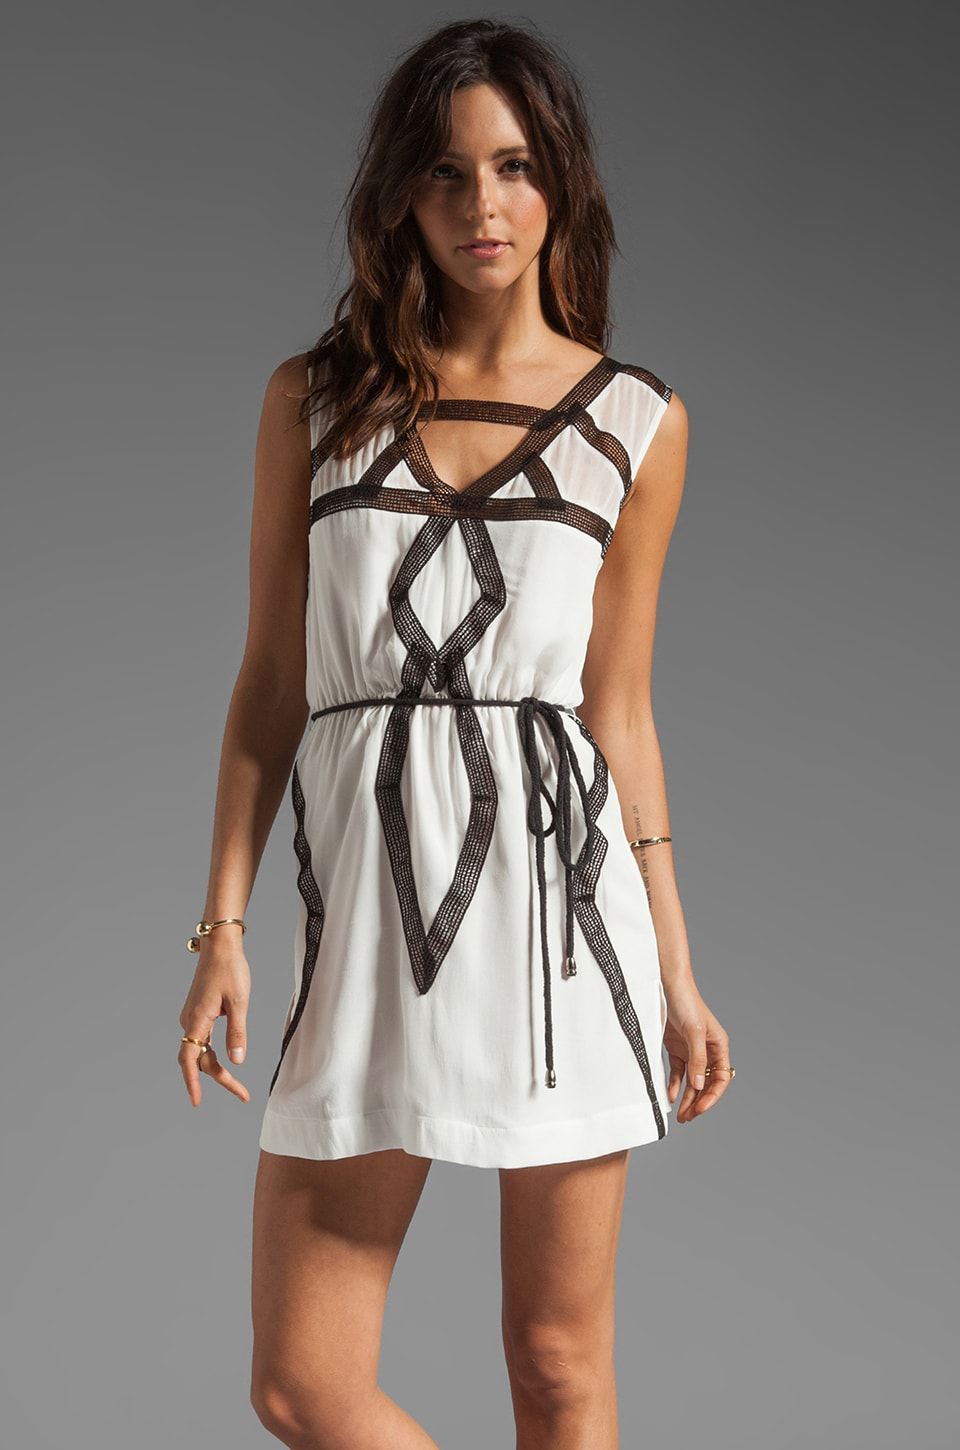 Suboo Mini Tank Dress in White Pagoda